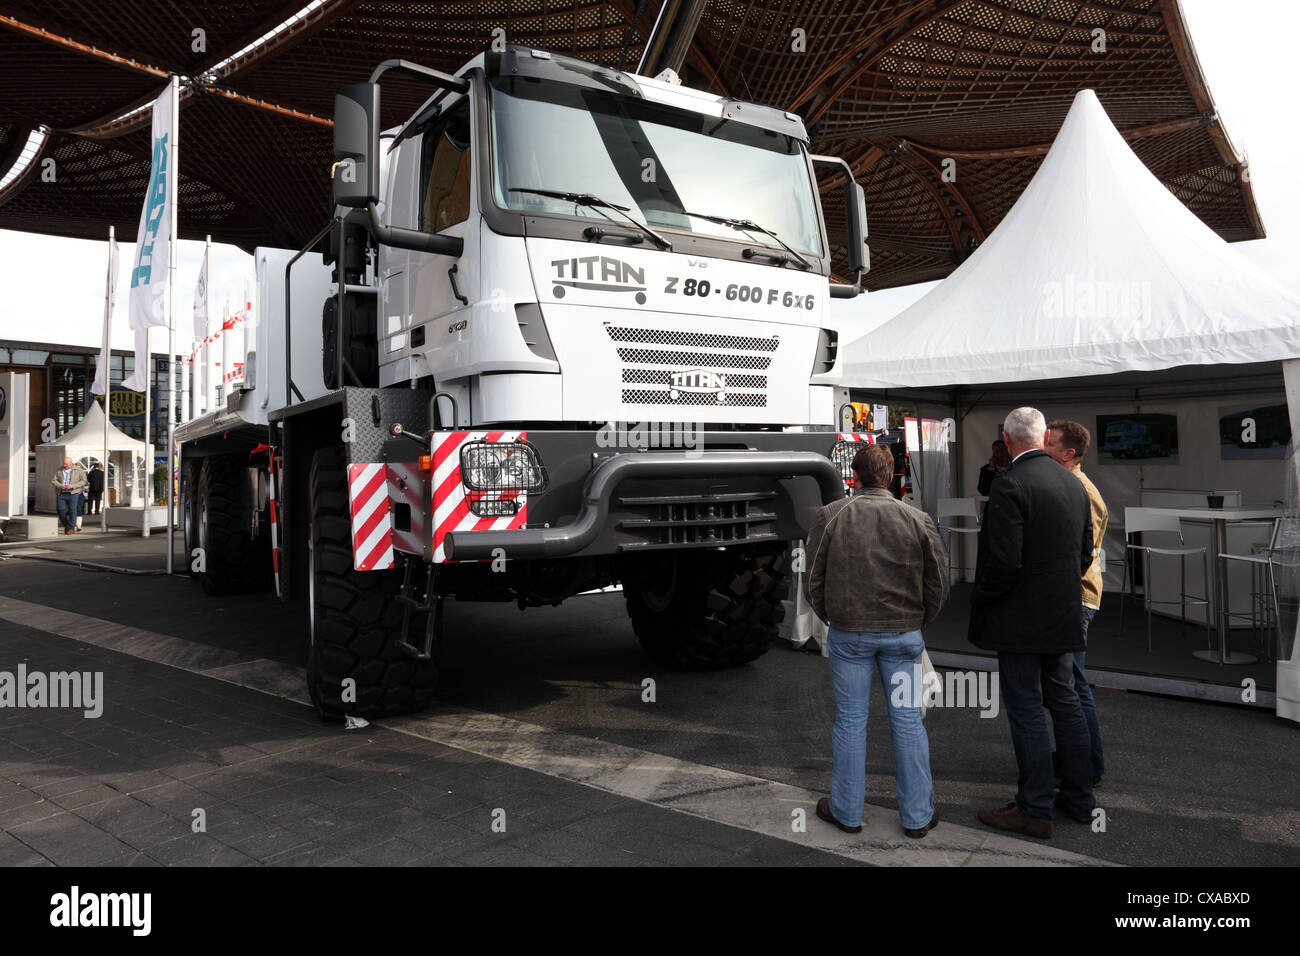 TITAN 8060 Truck at the International Motor Show for Commercial Vehicles - Stock Image